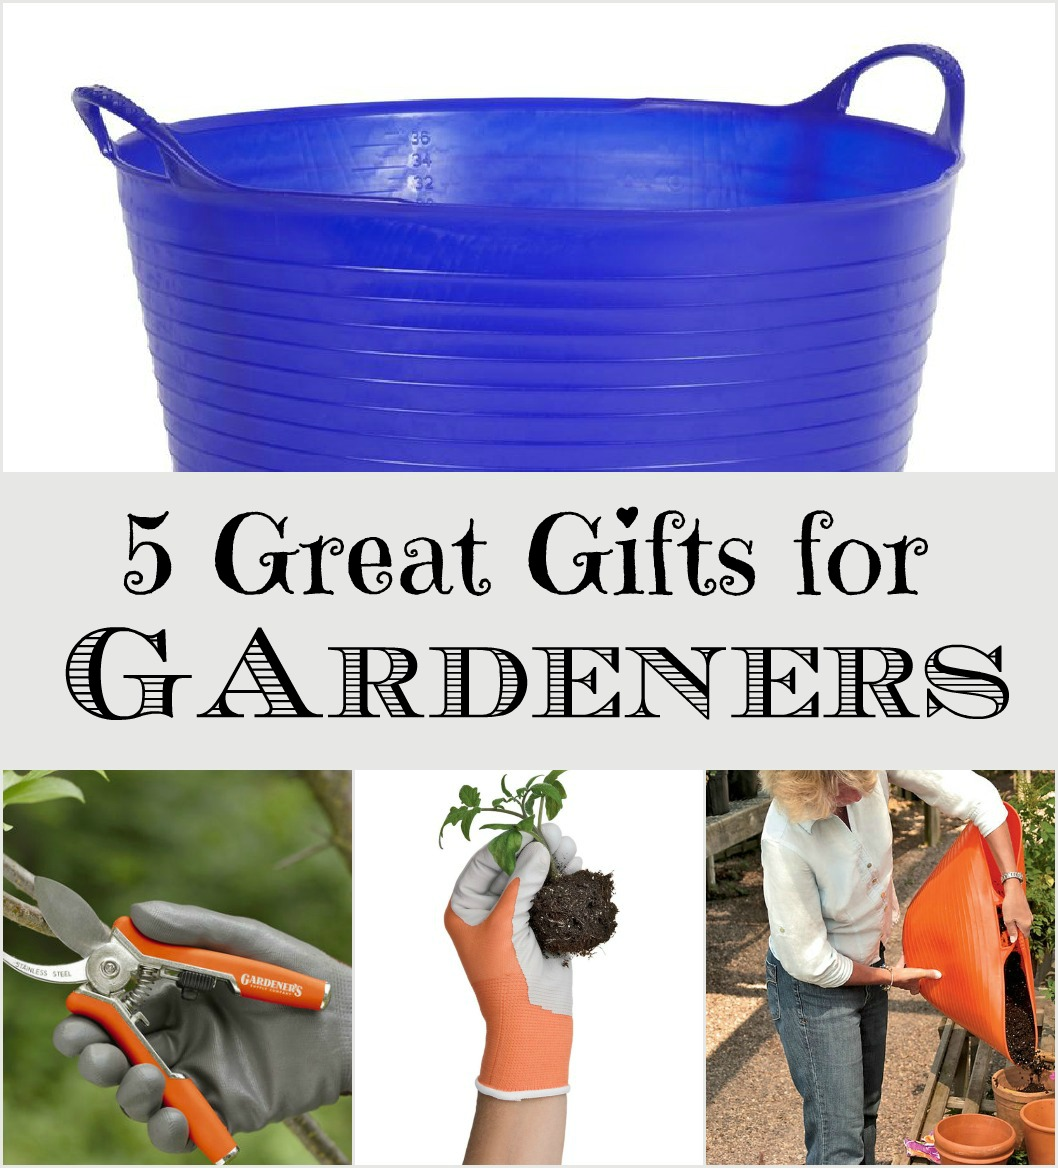 gifts project have everything for gardeners save garden life the nature who best